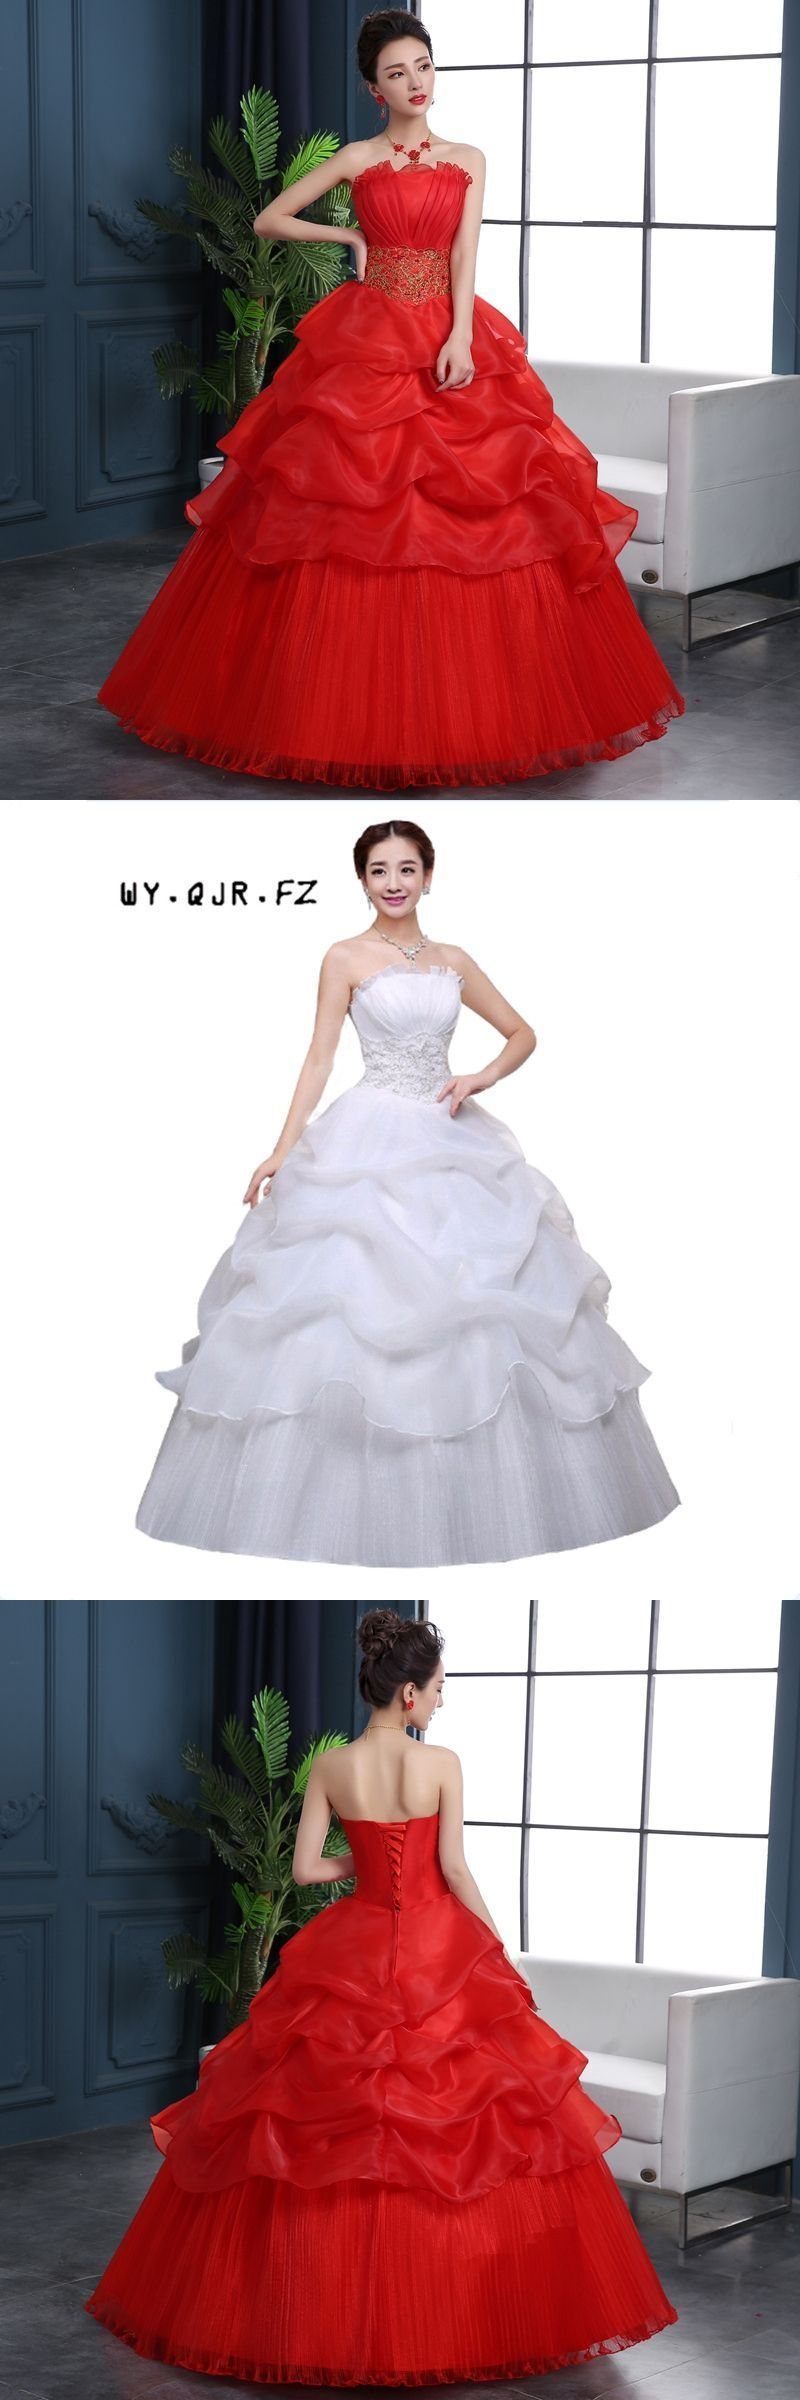 Ych spring autumn wedding party dress new bride wedding dress